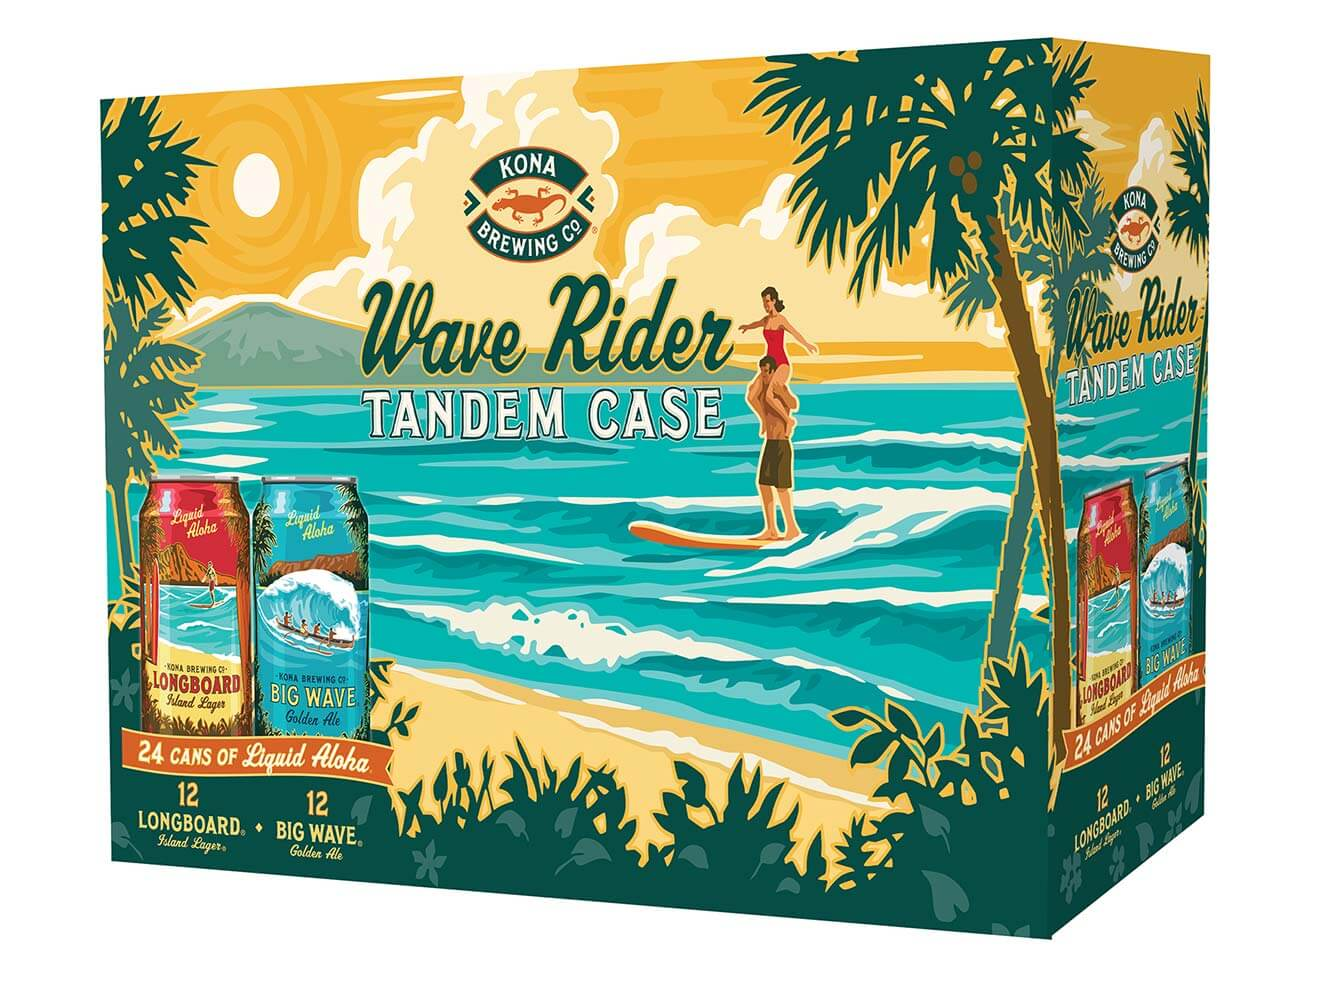 Wave Rider Tandem Case, case packaging on white